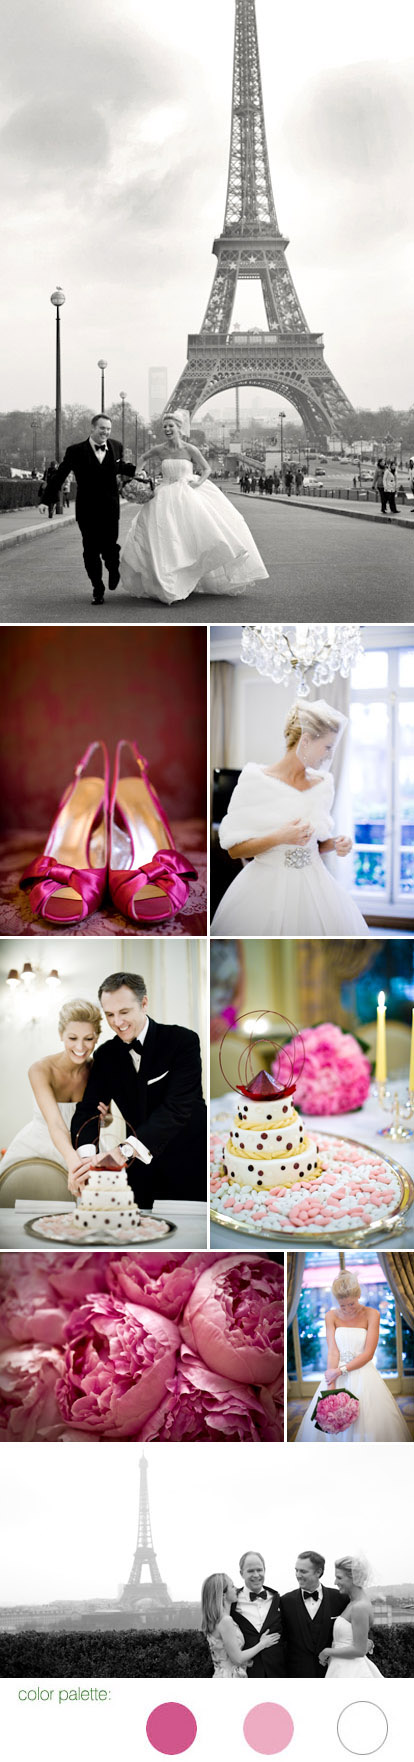 Paris, France real wedding, images by Amy and Stuart Photography